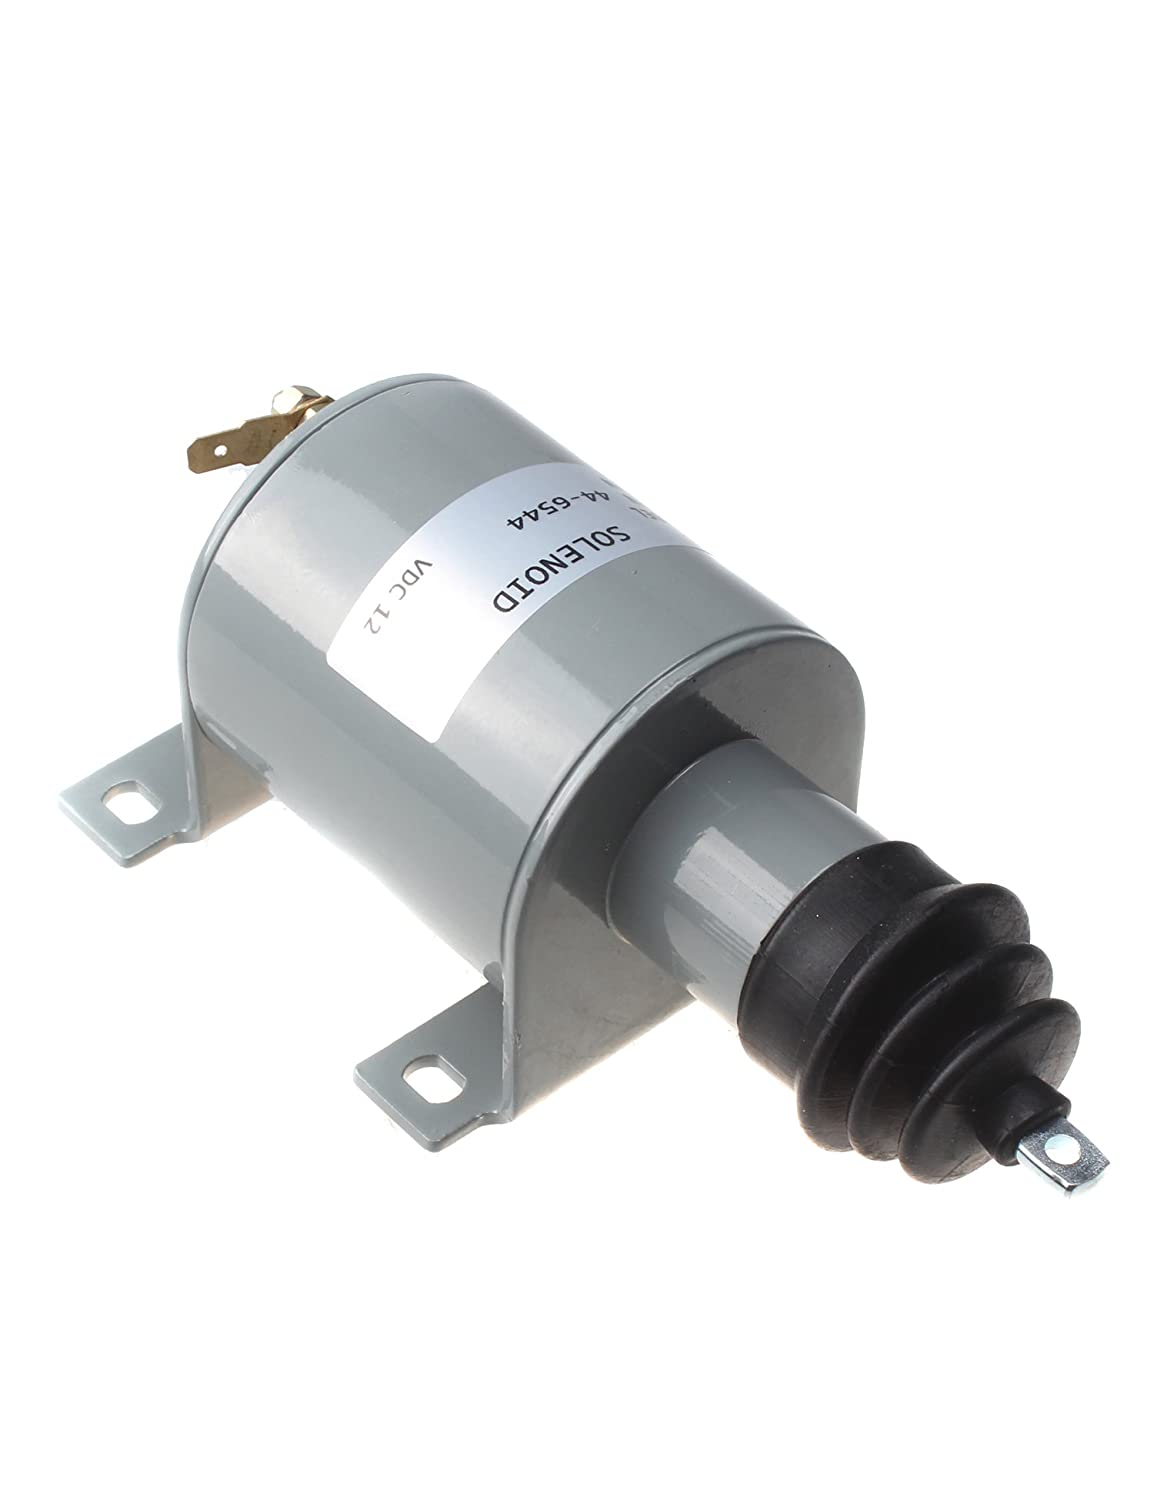 Amazon.com: 12V Speed Shut Off Solenoid 44-6544 446544 for ...